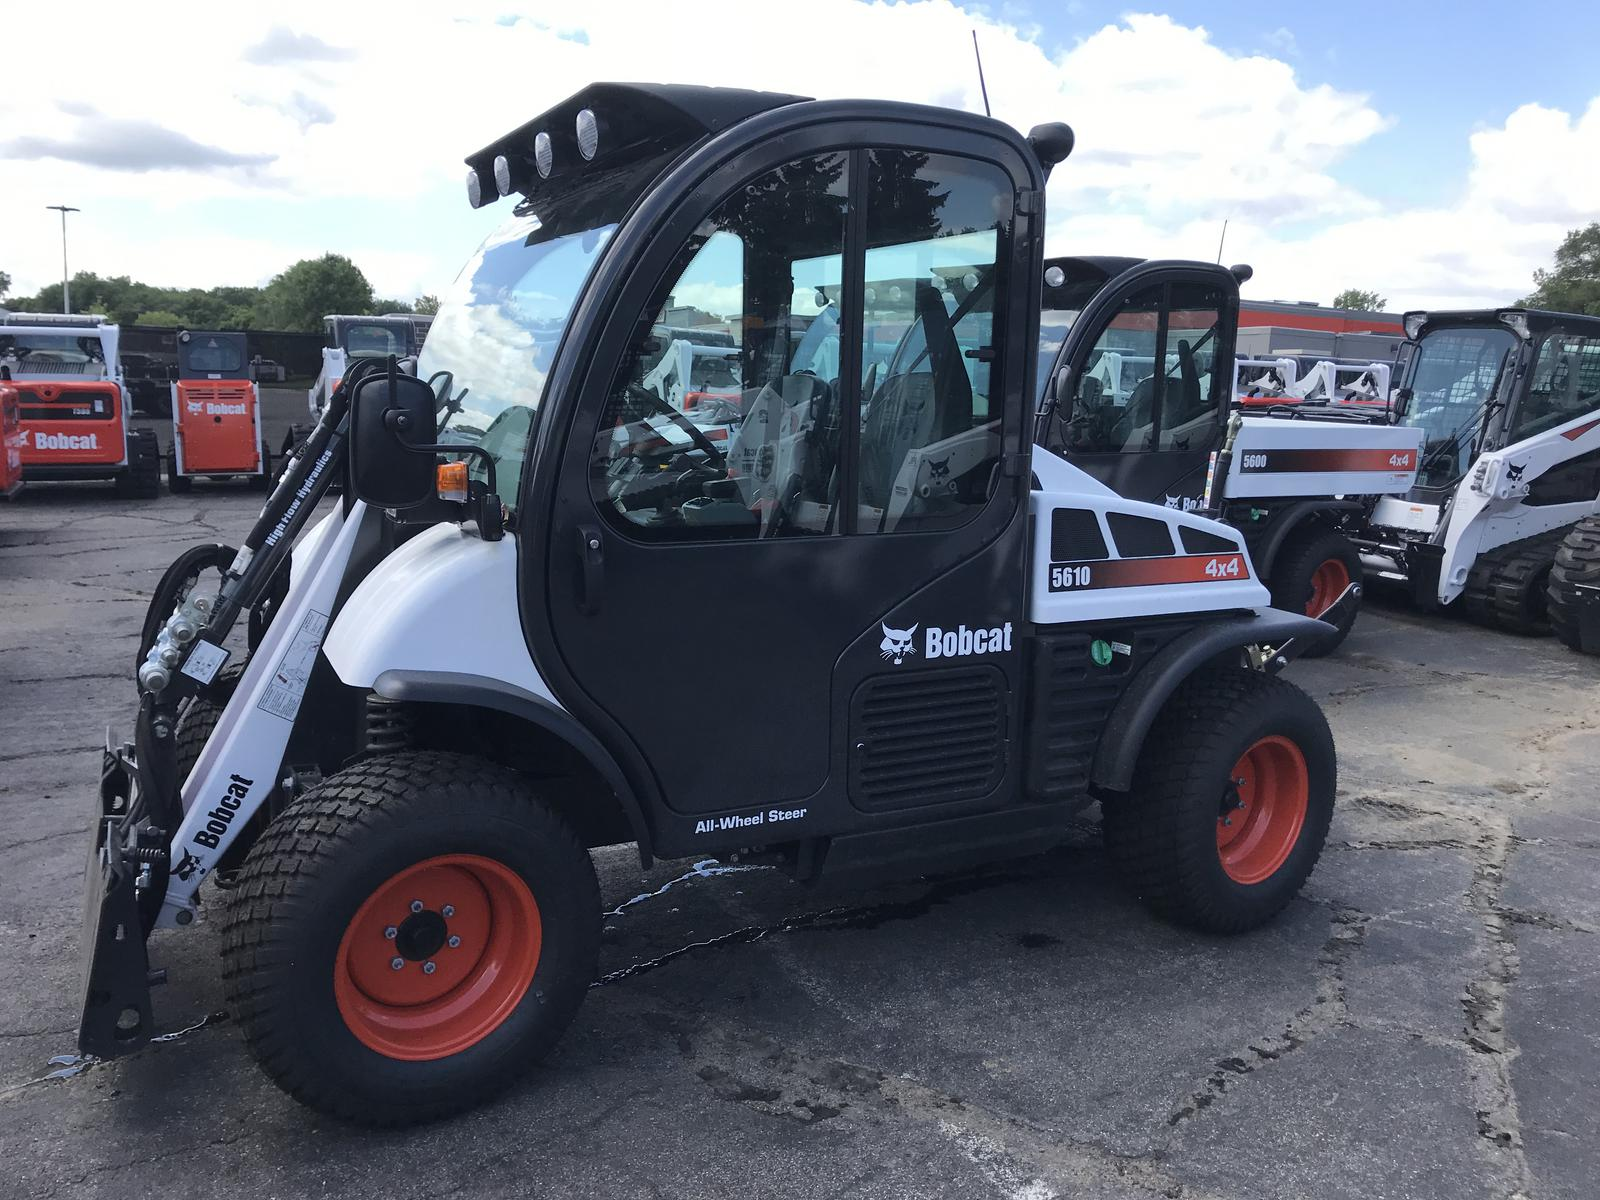 2019 Bobcat 5610 for sale in Little Canada, MN  Tri-State Bobcat